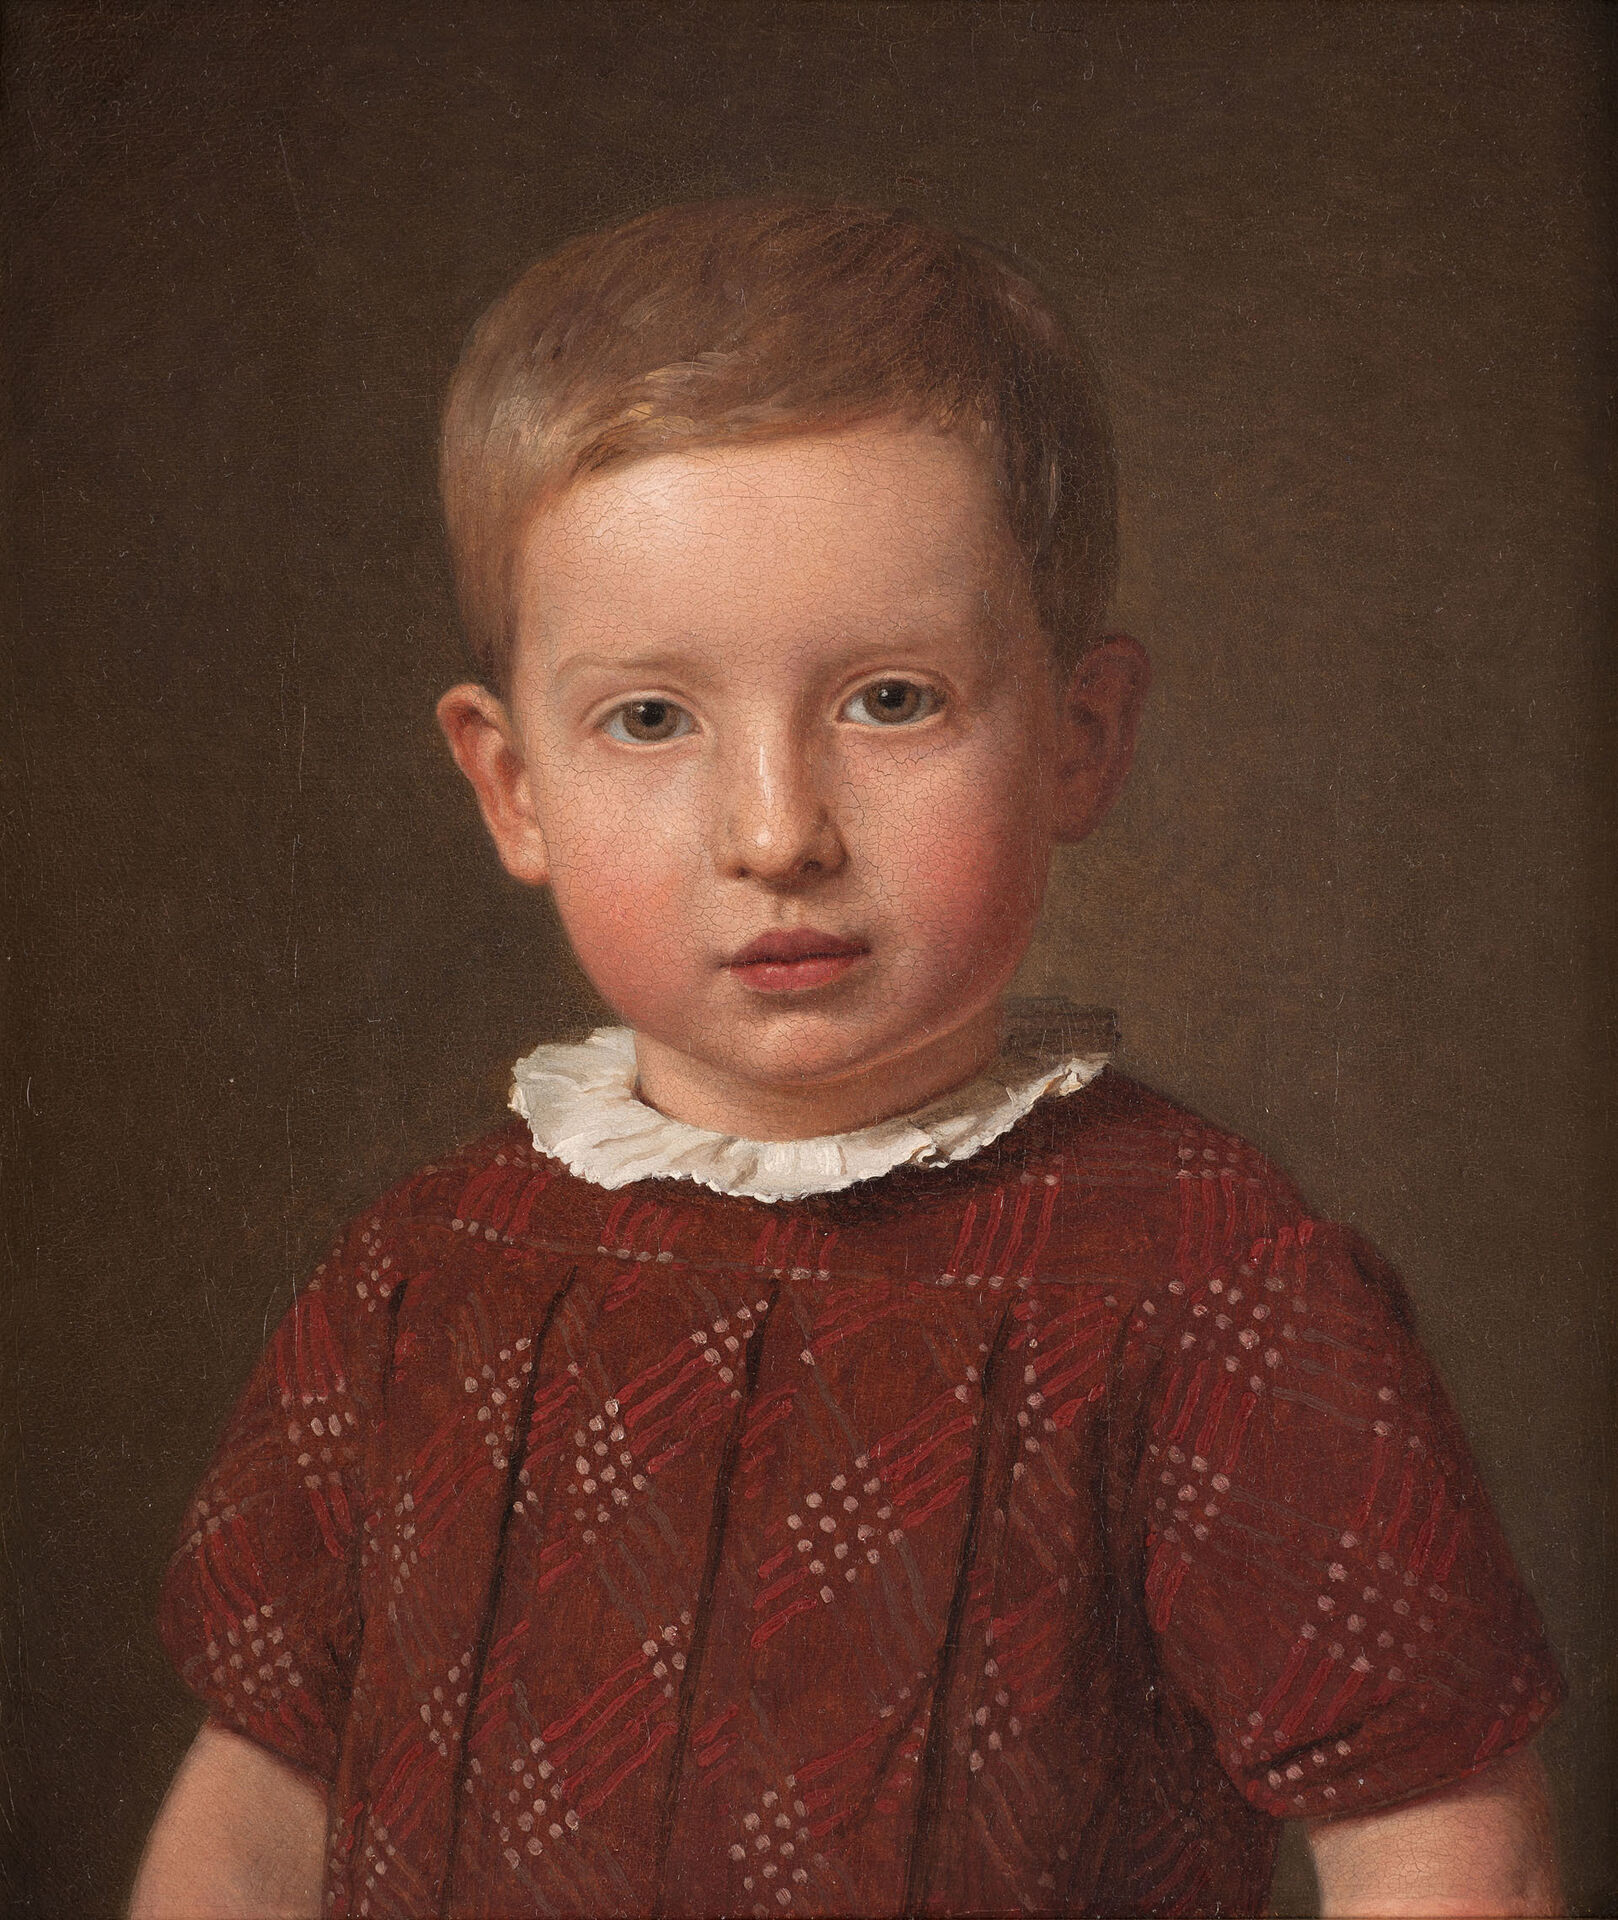 Christen Købke, The artist's nephew , the artist and headmaster Johan Jacob Krohn as a child, 1846. Oil on canvas. Nationalmuseum